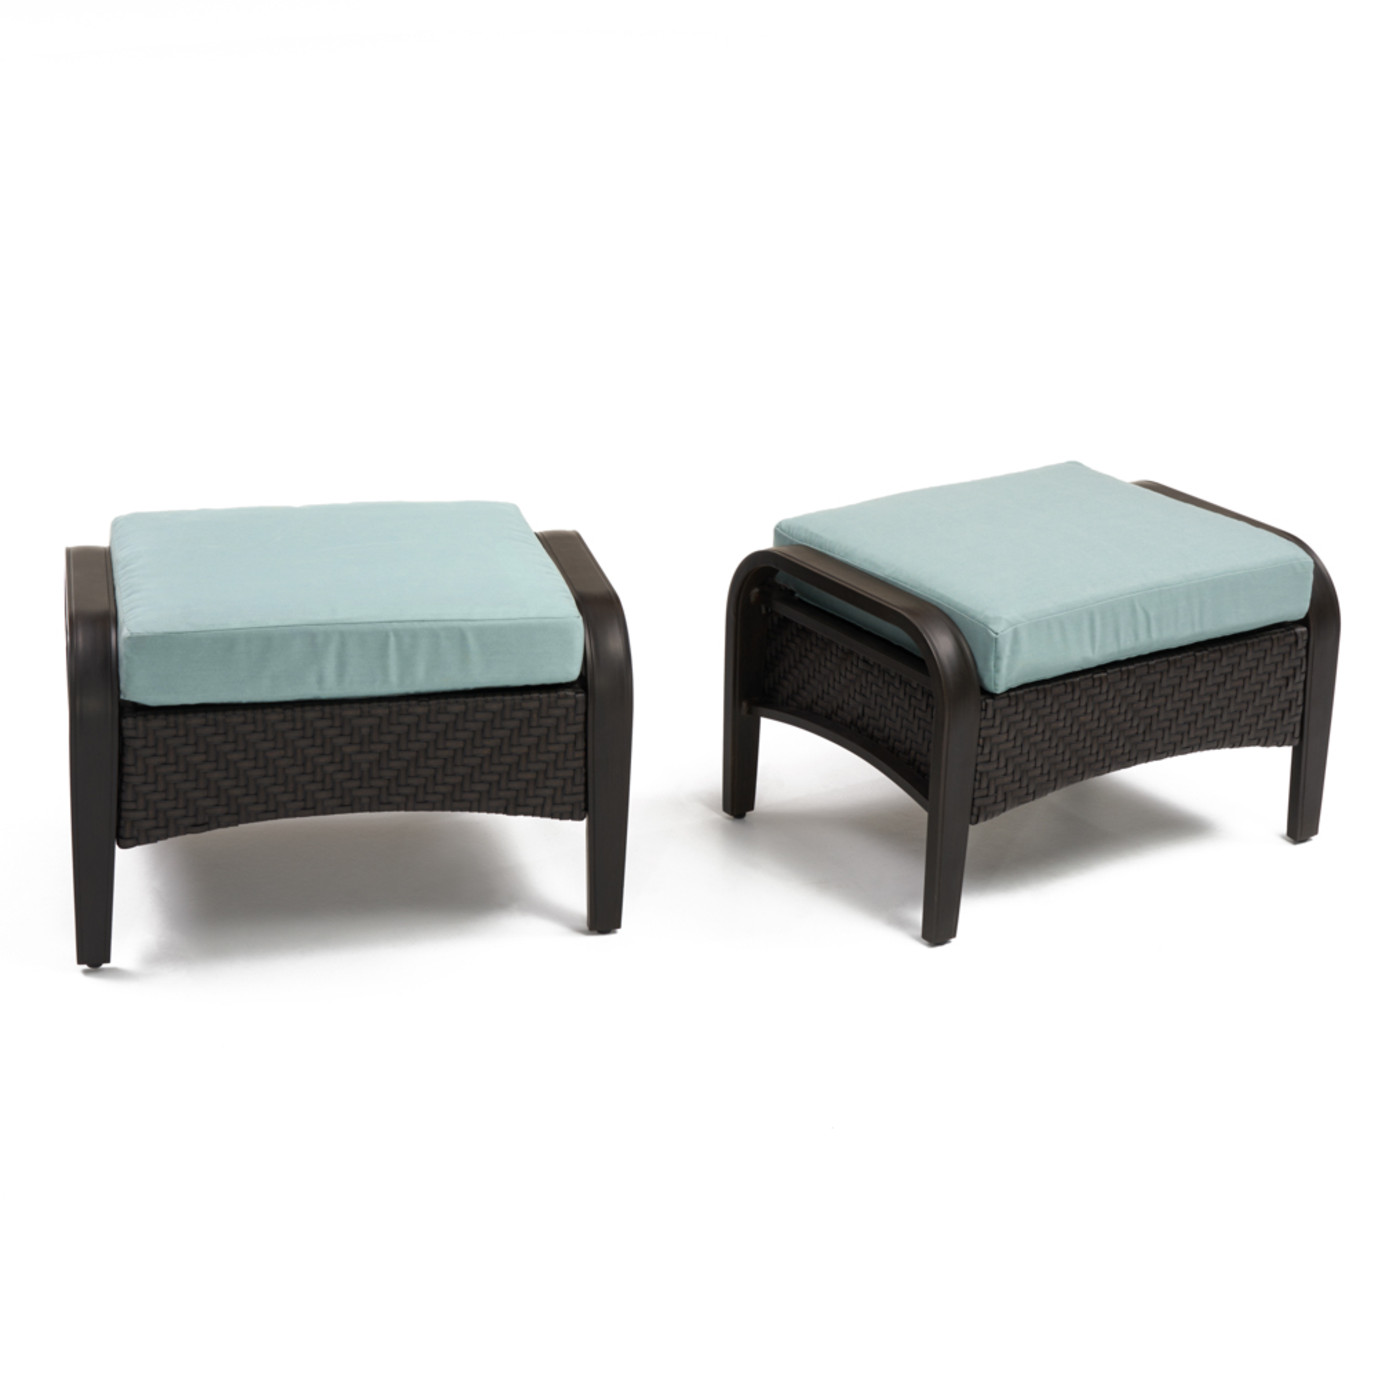 Barcelo™ Club Ottomans - Spa Blue